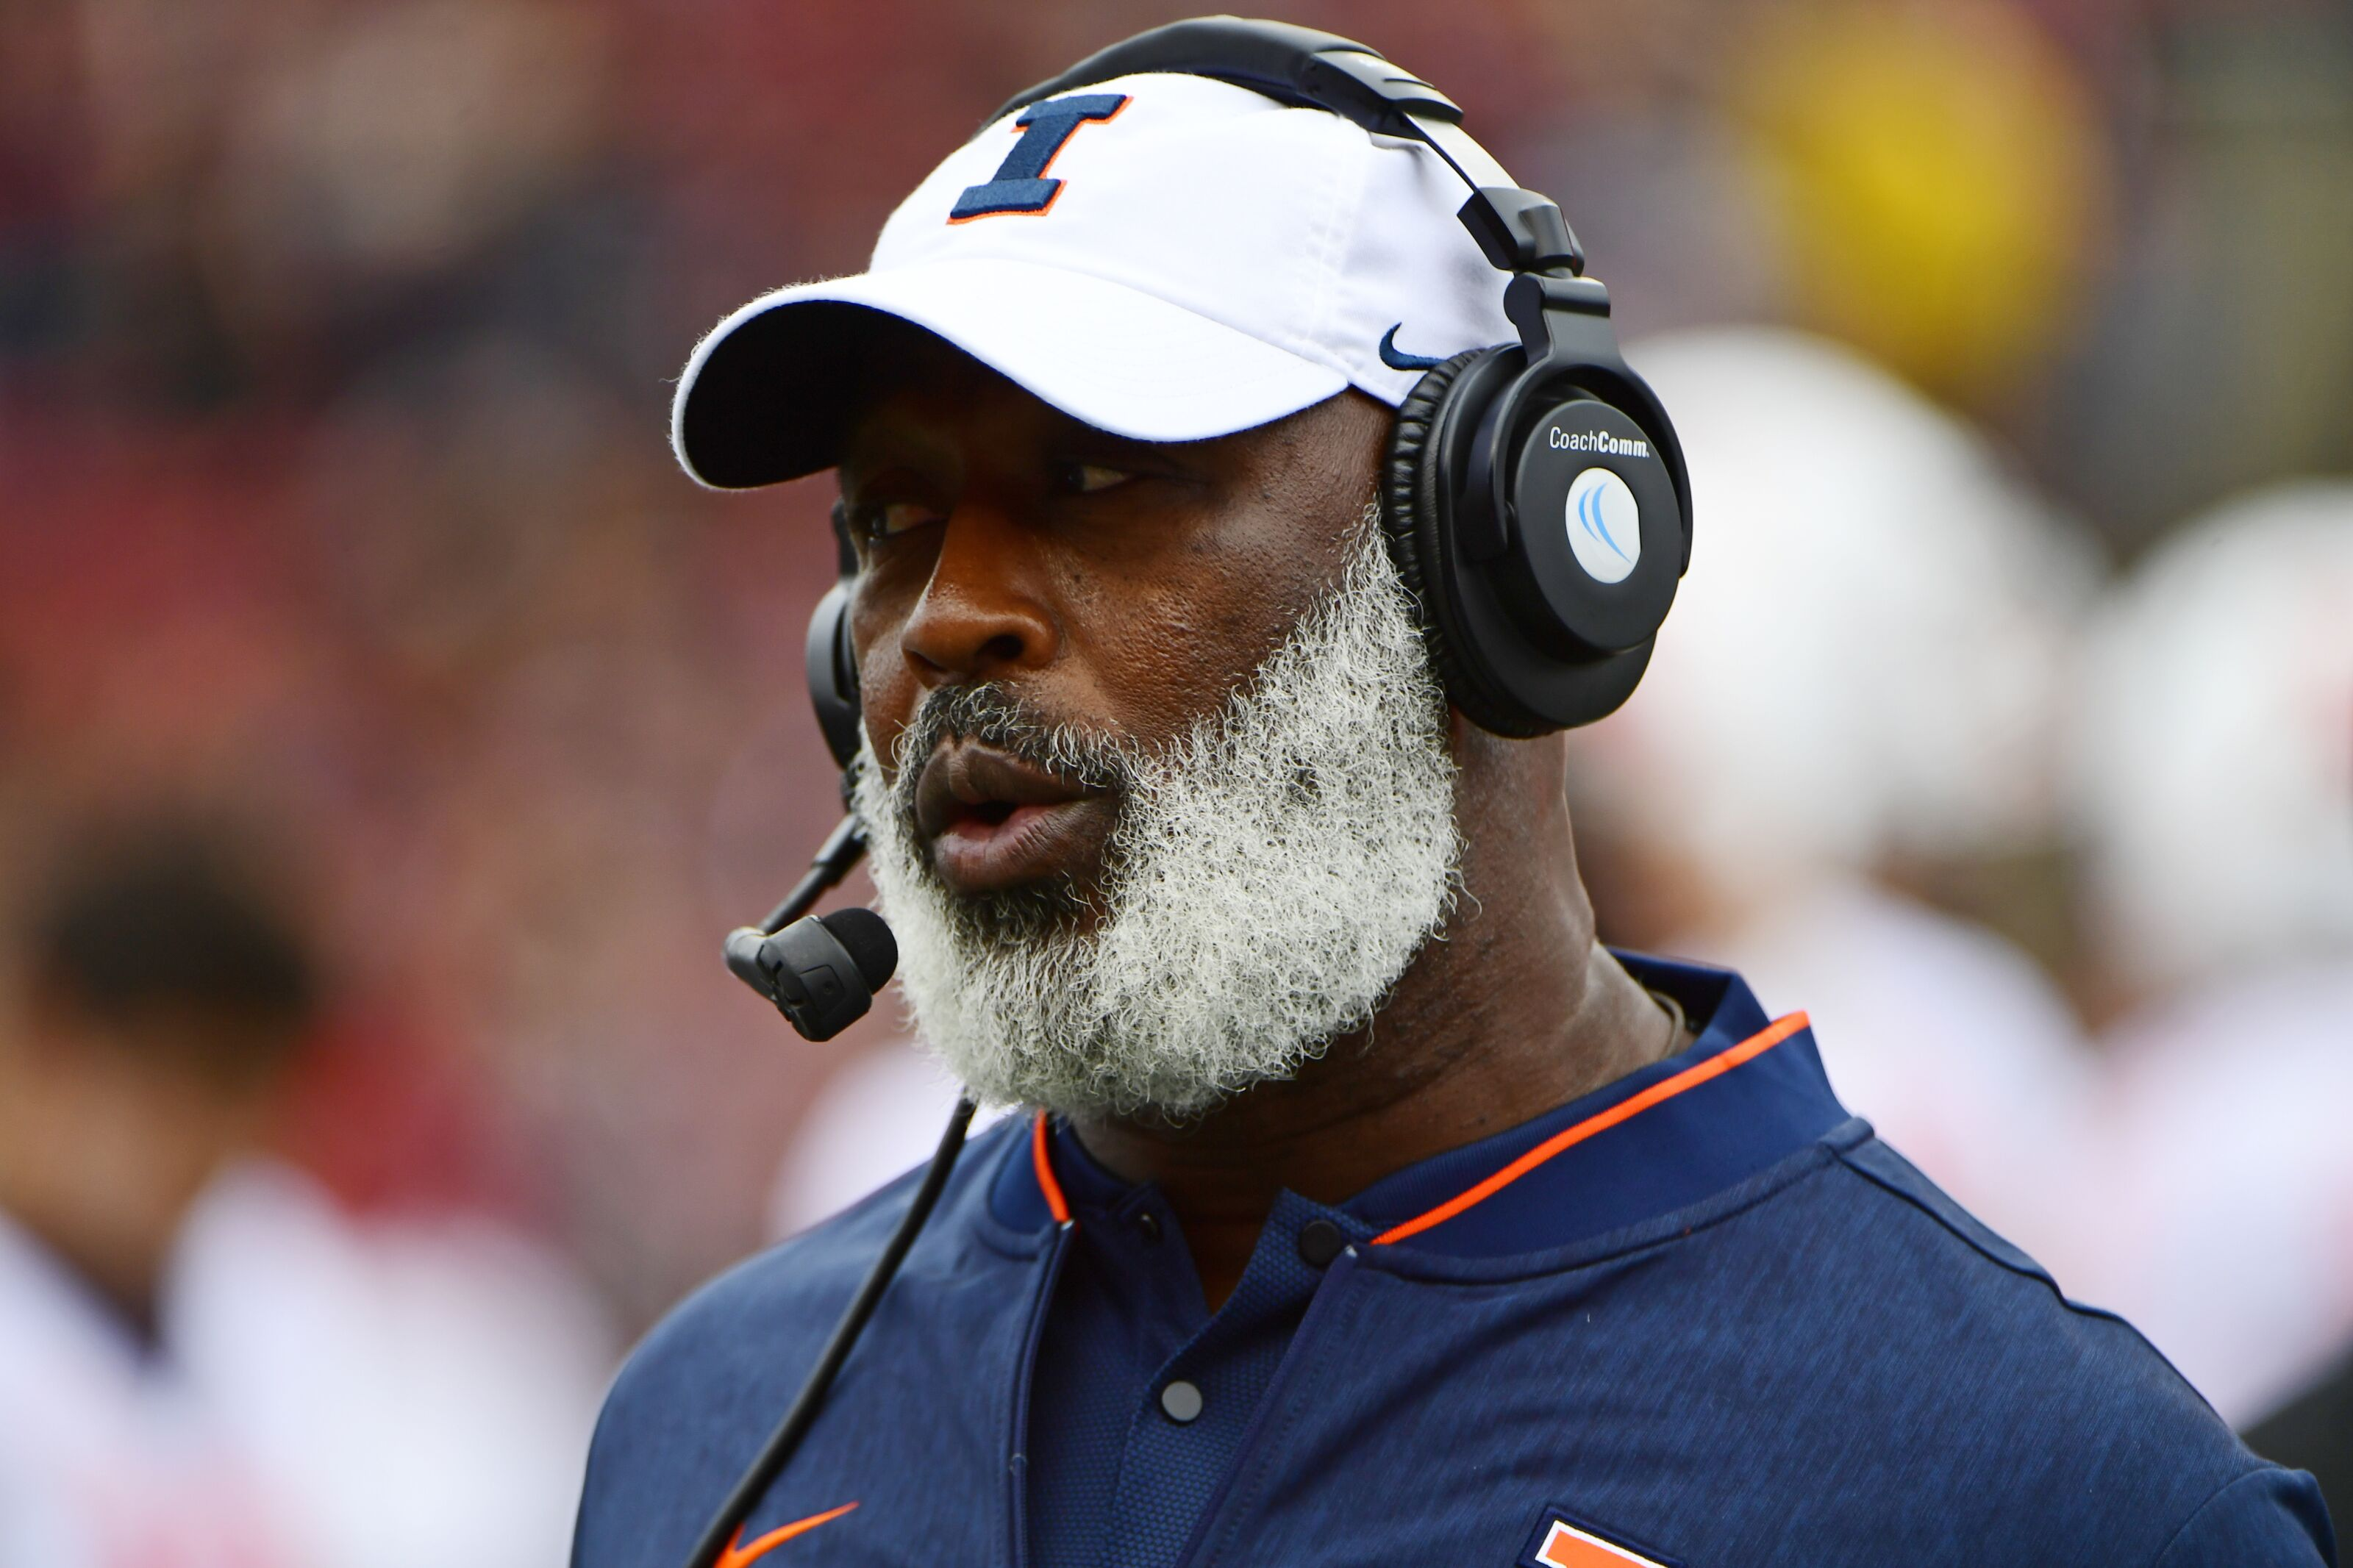 Illinois Football: Illini extend offer to 2022 WR Luther Burden